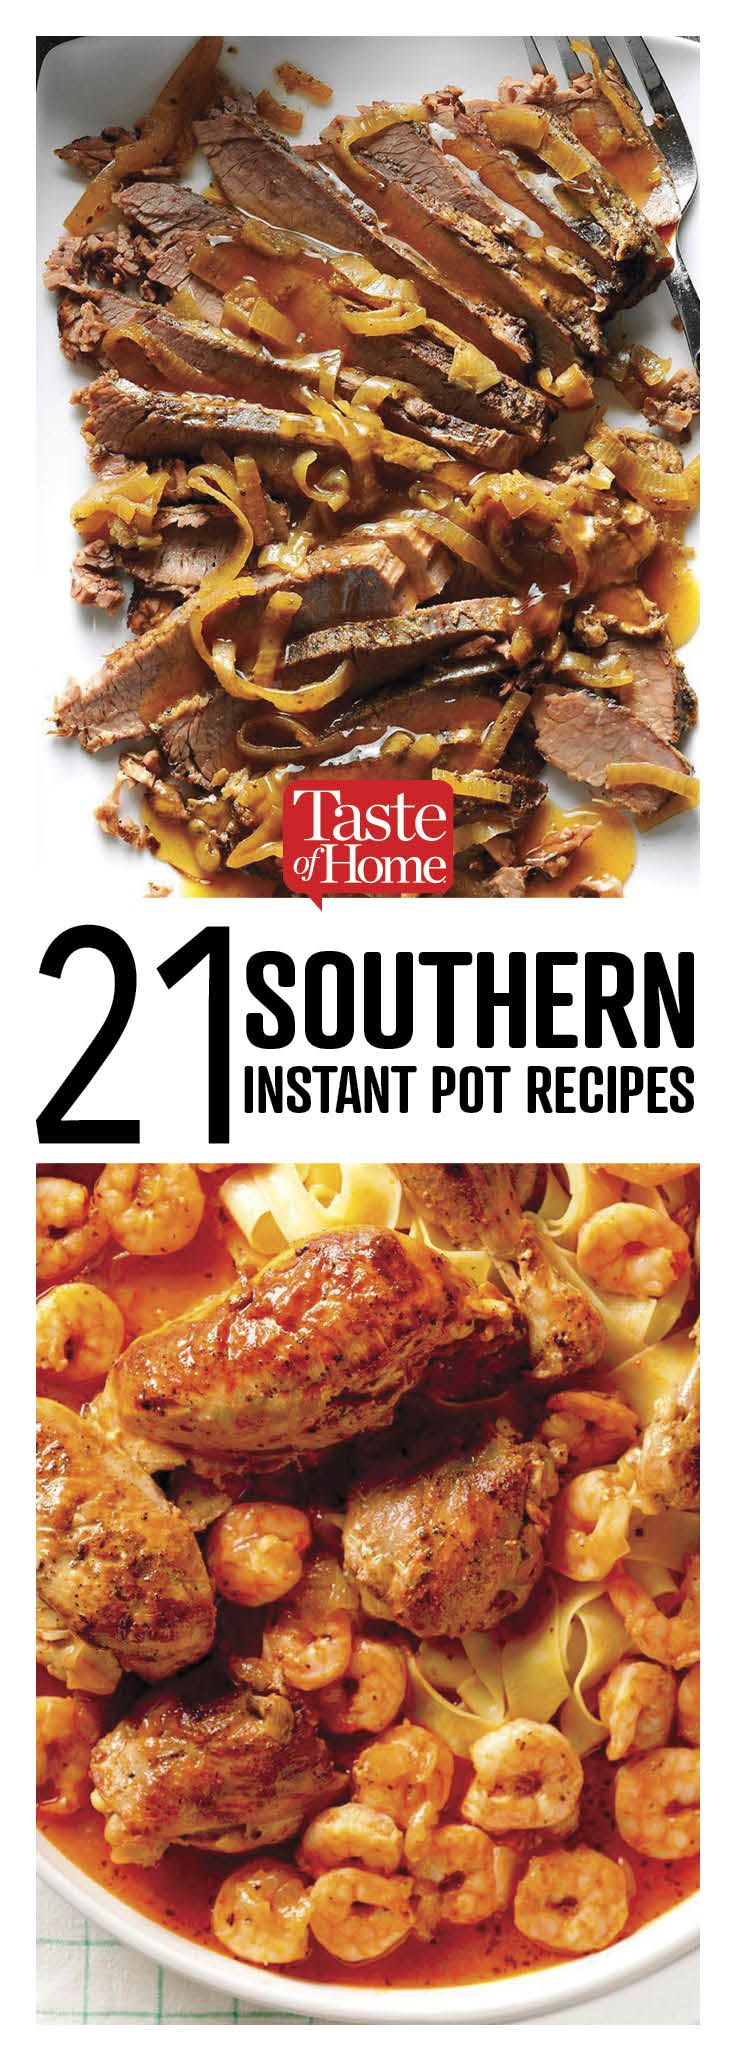 Photo of 21 Southern Instant Pot Recipes to Make Tonight